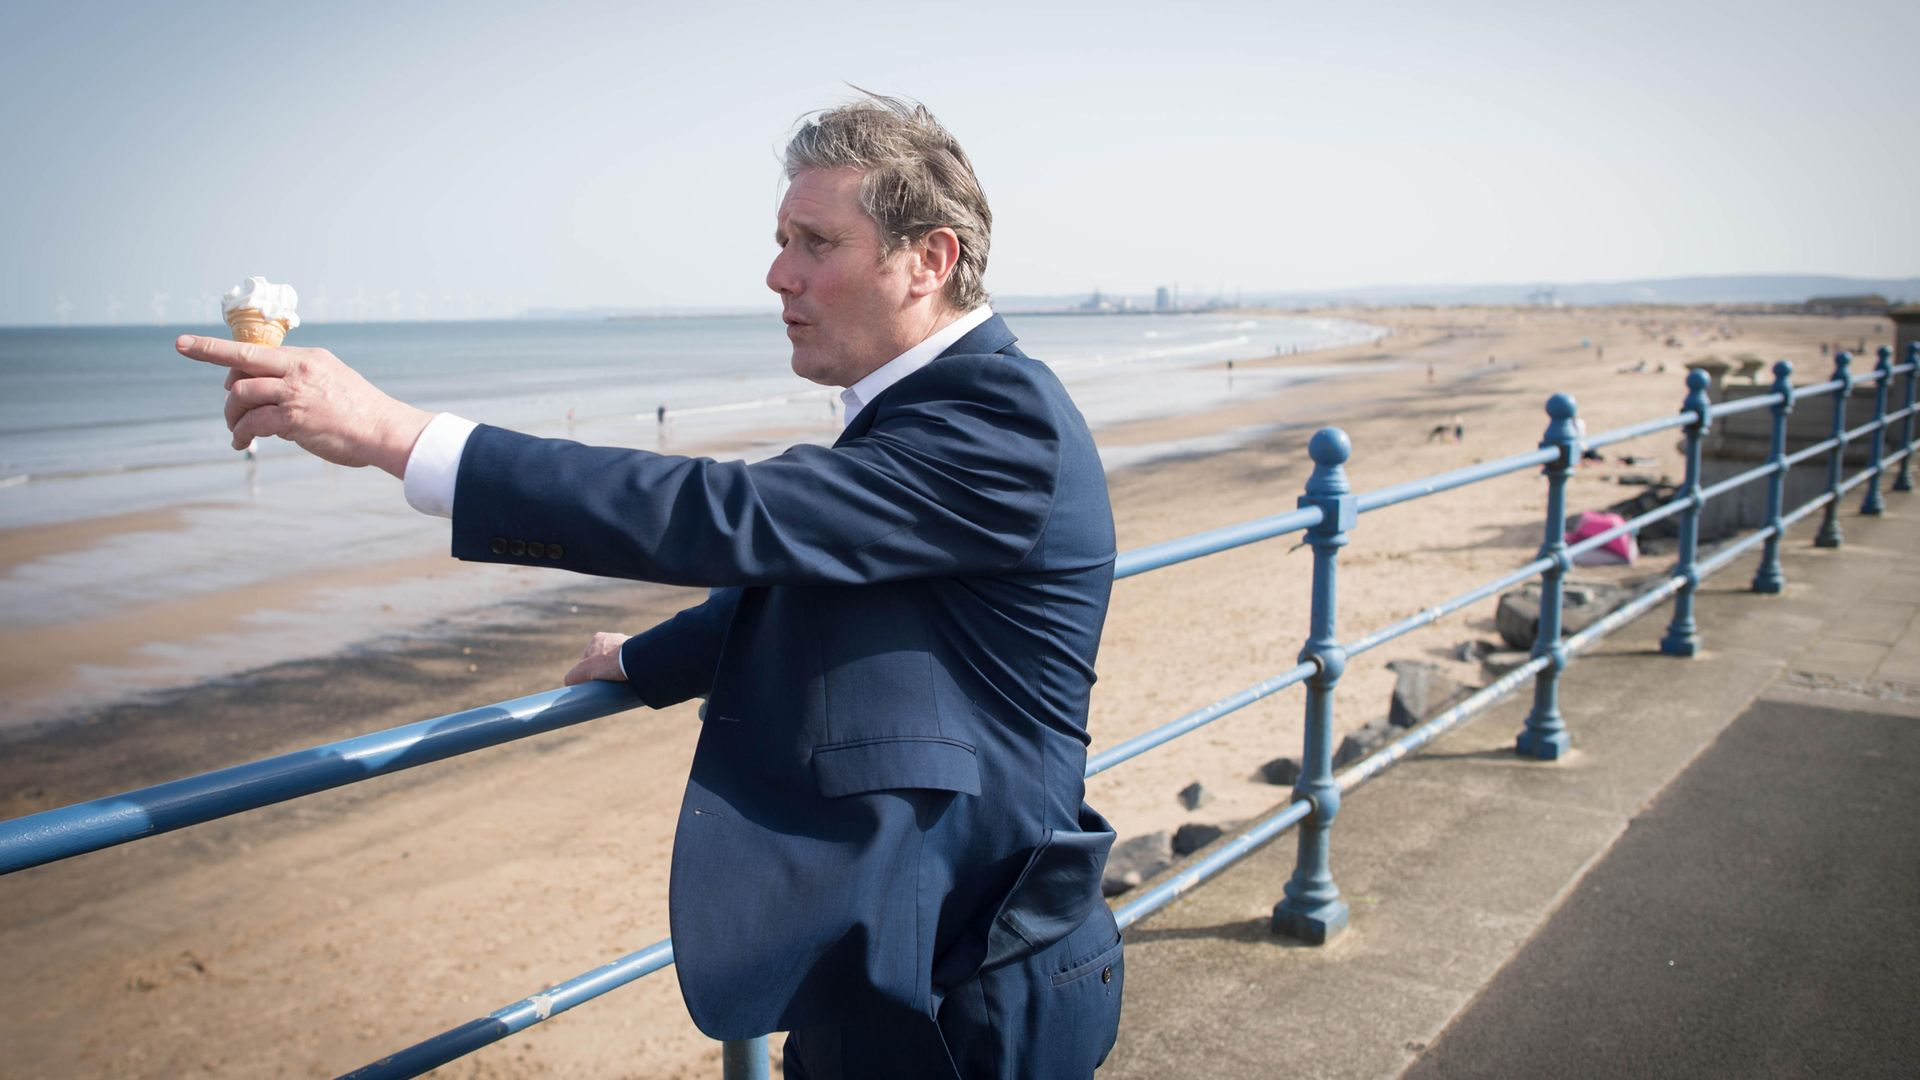 Labour Party leader Sir Keir Starmer meets local people in Seaton Carew in County Durham during a day of campaigning - Credit: PA